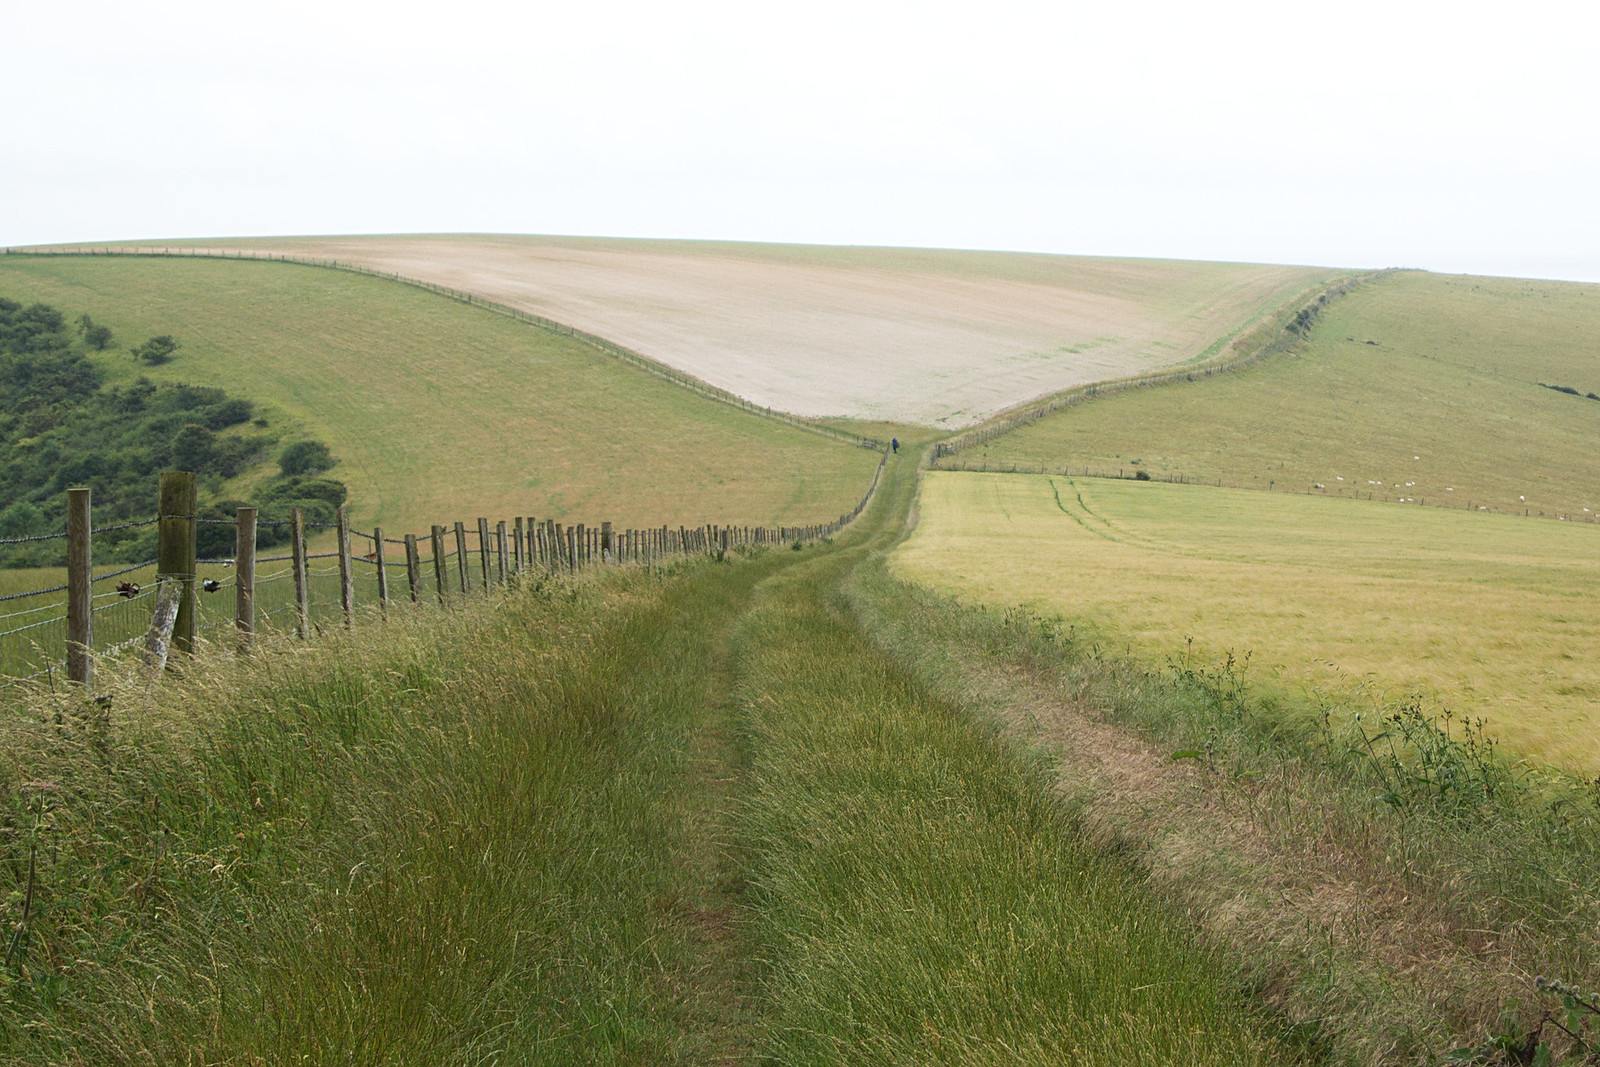 South Downs Way Southease to Seaford